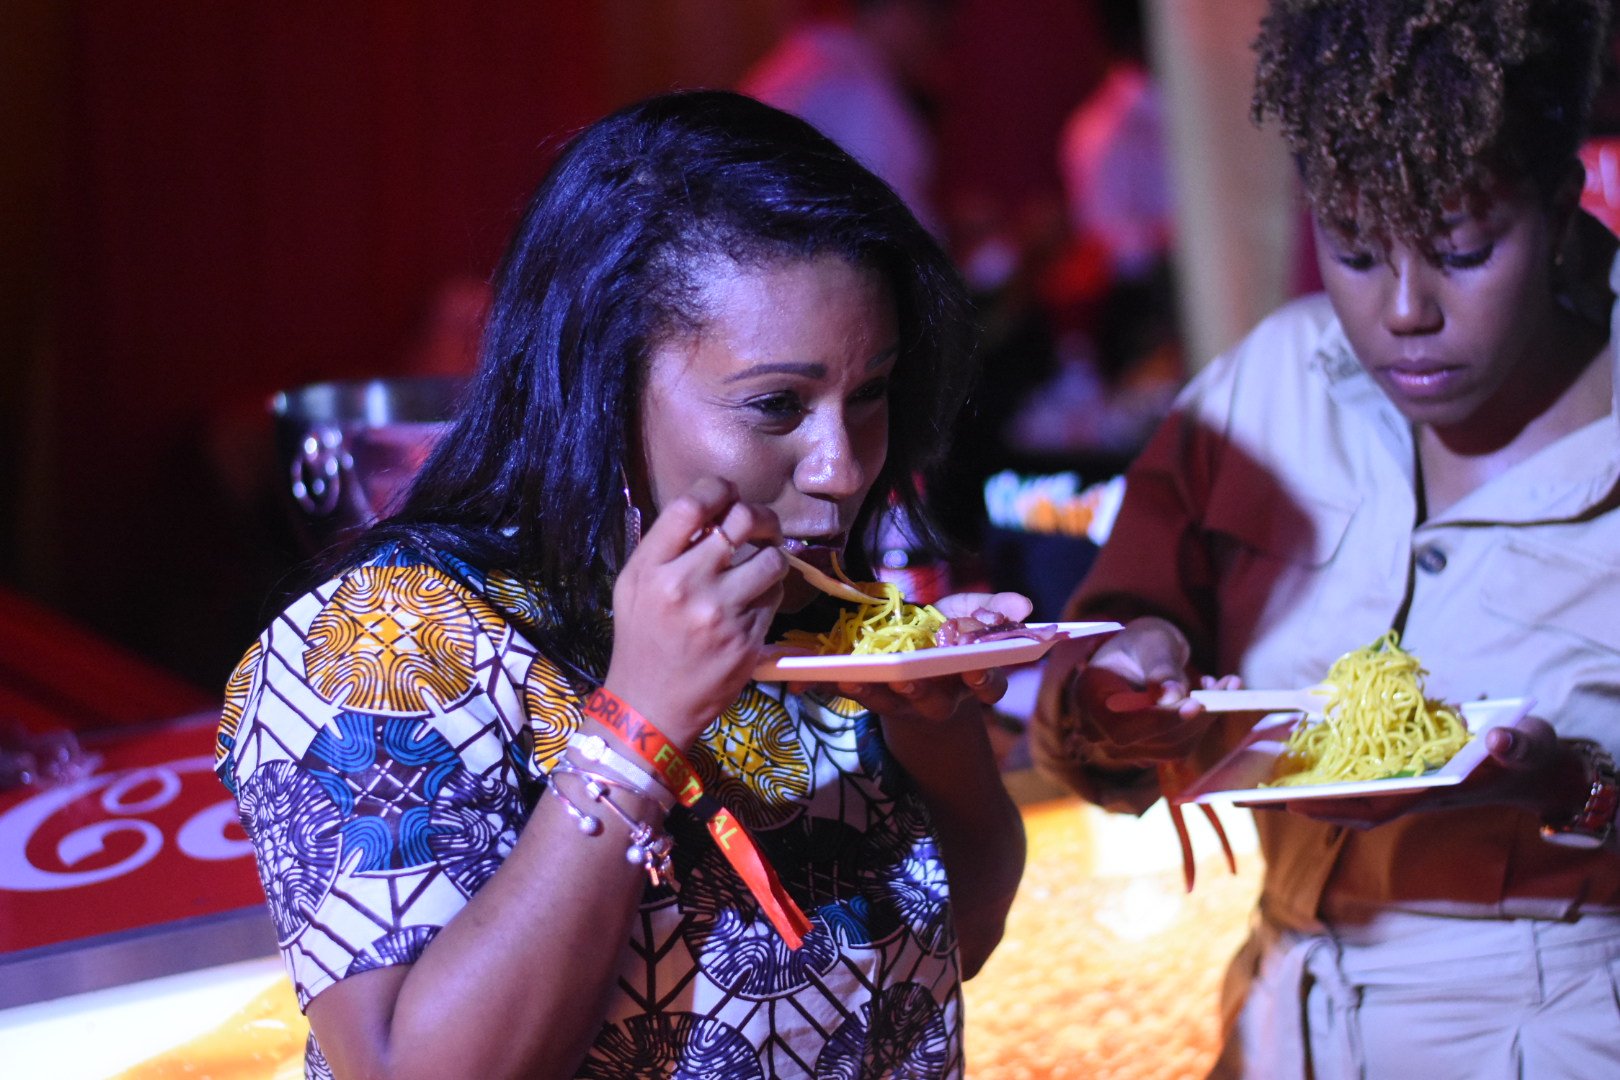 Attorney-at-law Stacy Earl (left) and architect Lorie McIntosh tuck into oriental fare at Chopstix. (Photos: Marlon Reid)